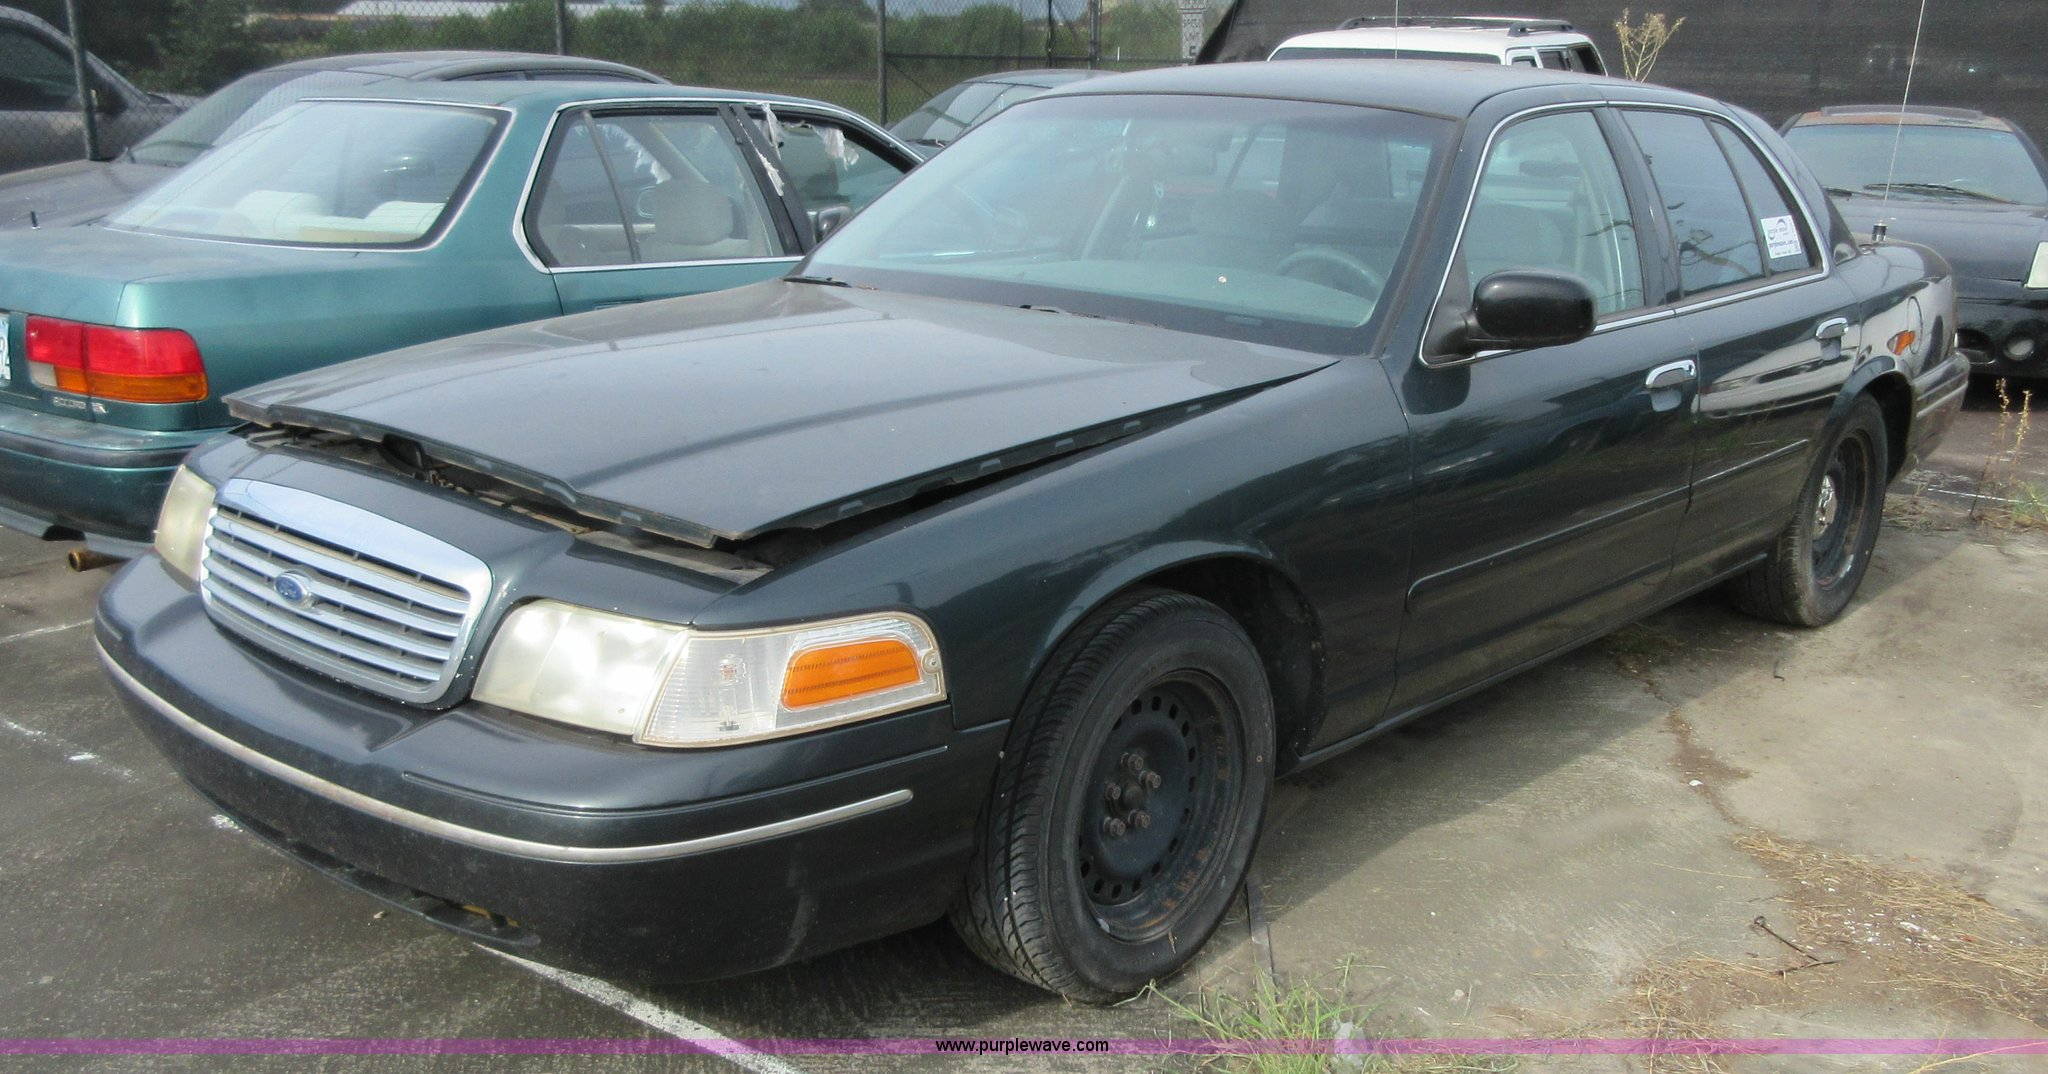 1998 crown vic tire size